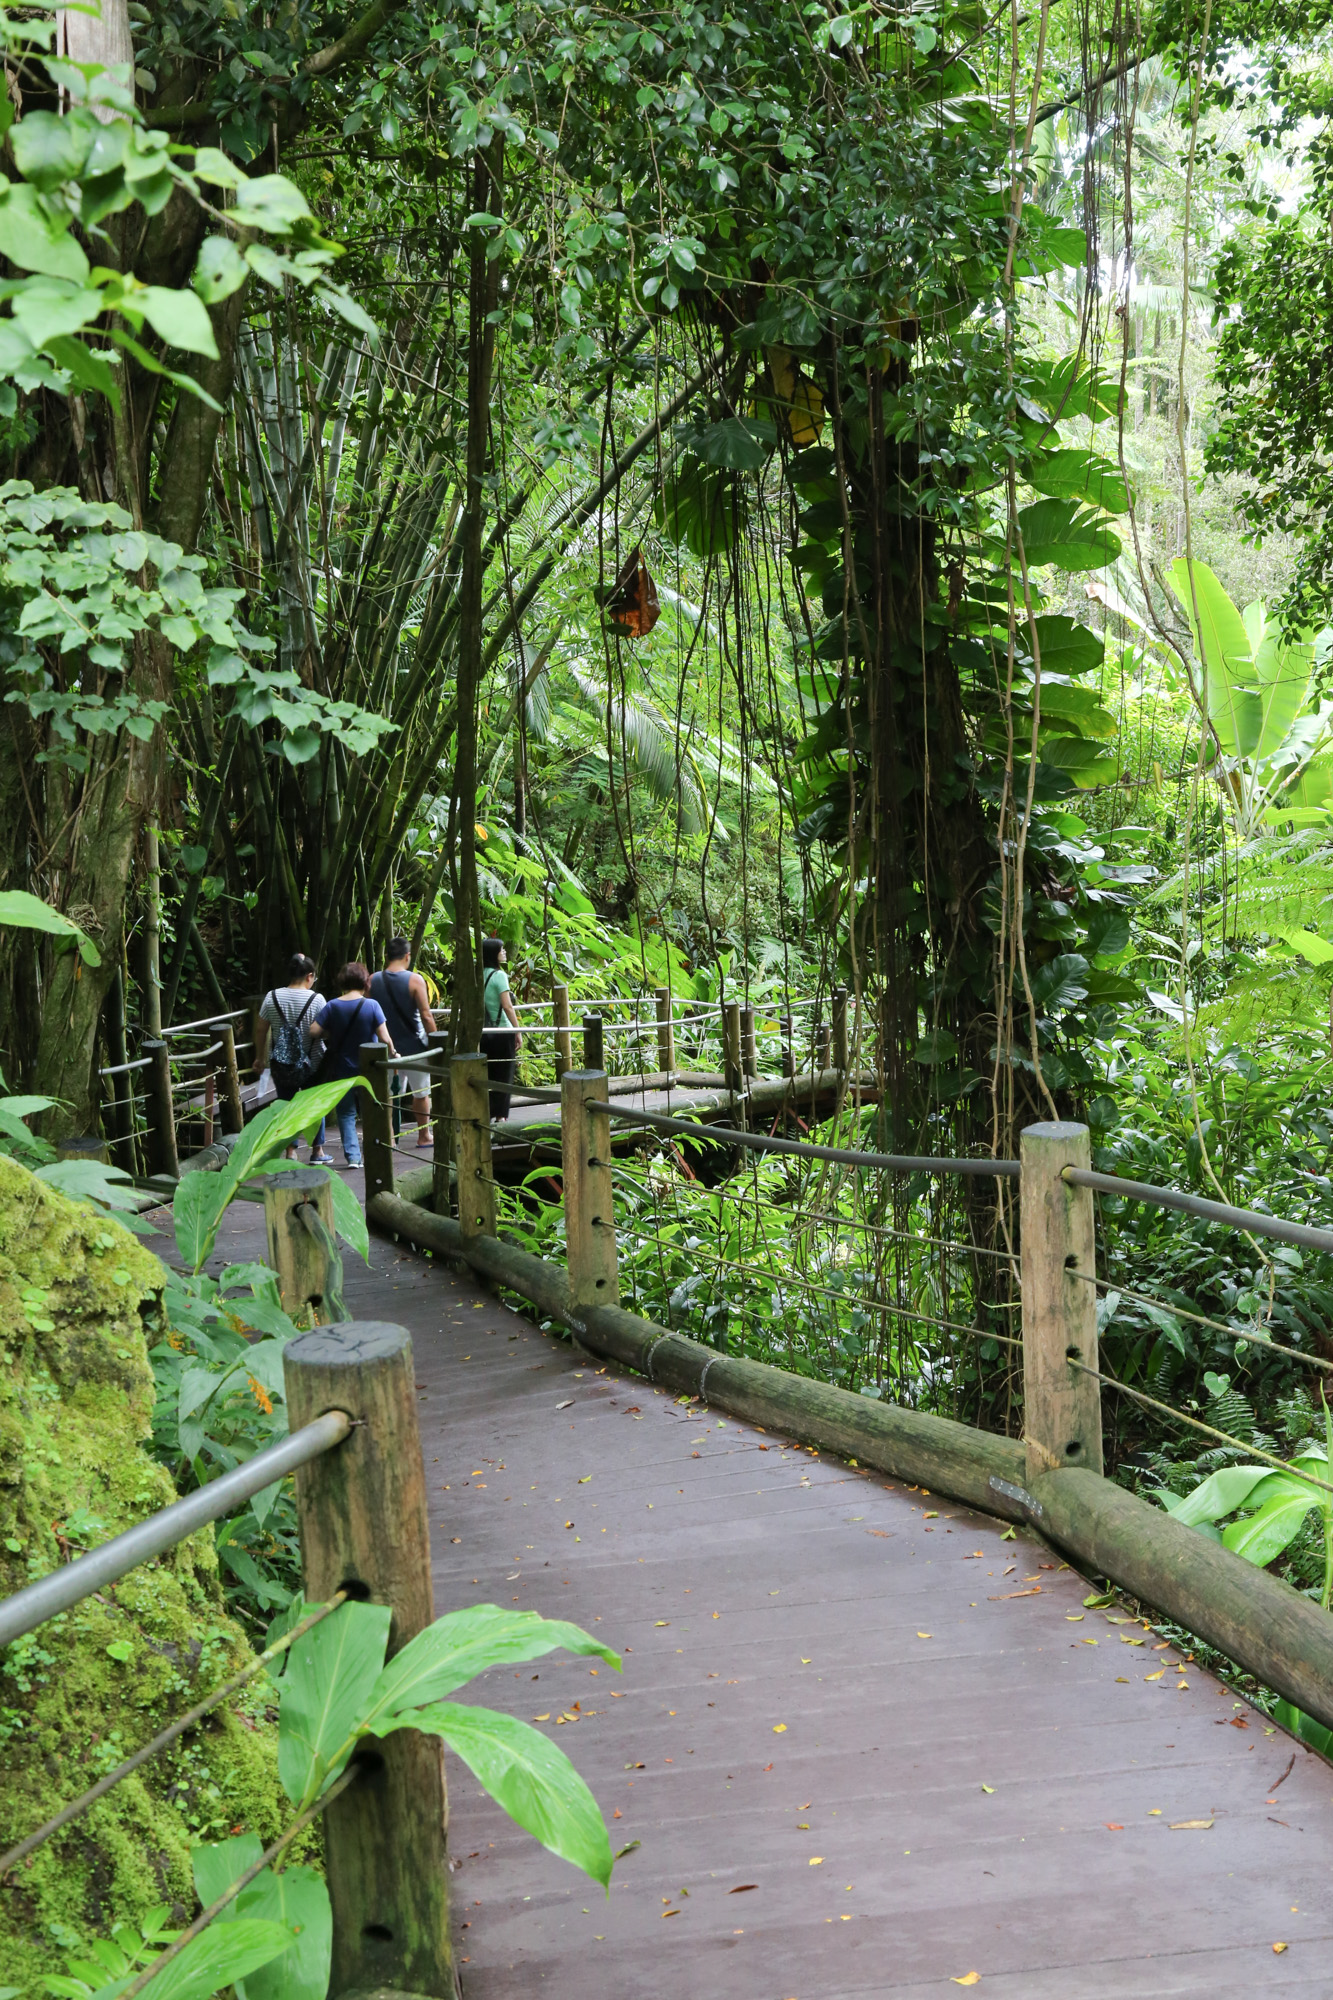 original_caughey-melissa-hawaii-garden-boardwalk-entry